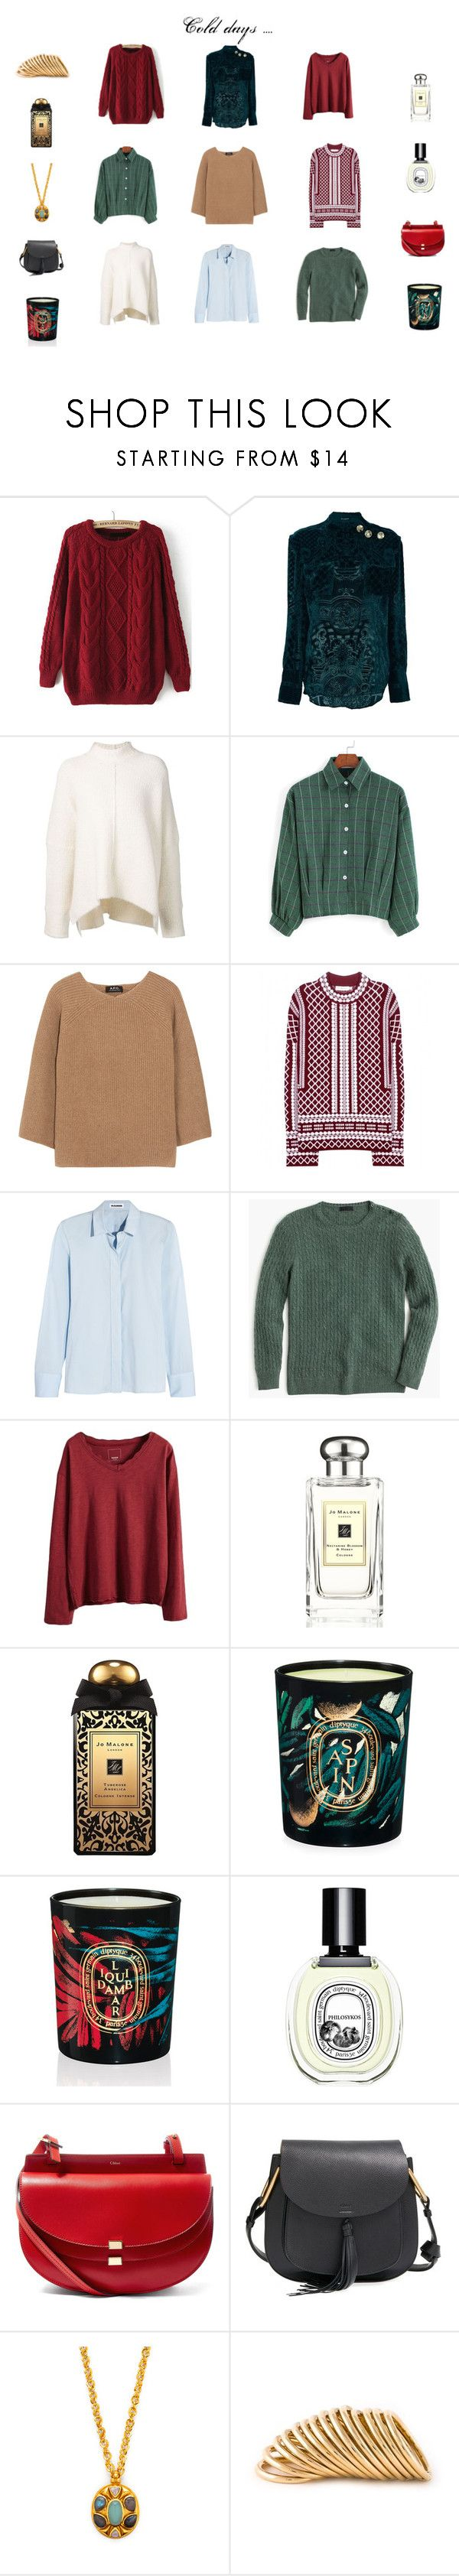 """""""Cold days"""" by mousouza on Polyvore featuring Balmain, URBAN ZEN, A.P.C., Tory Burch, Jil Sander, J.Crew, Jo Malone, Diptyque, Chloé and Shaun Leane"""